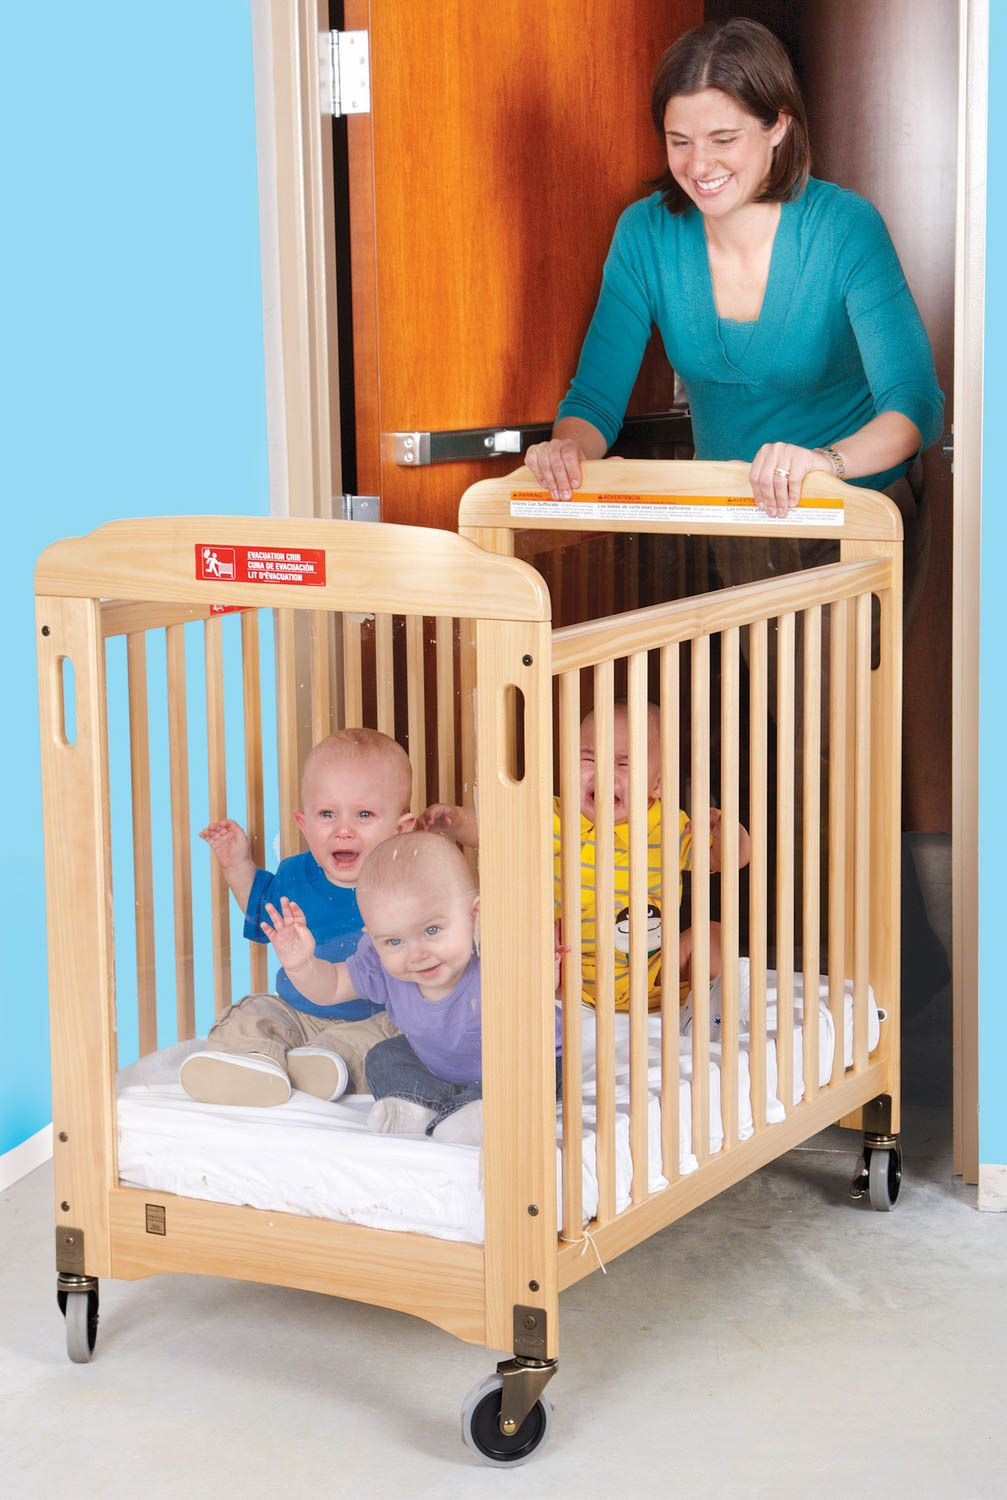 Evacuation Crib Play With A Purpose Cribs Childcare Center